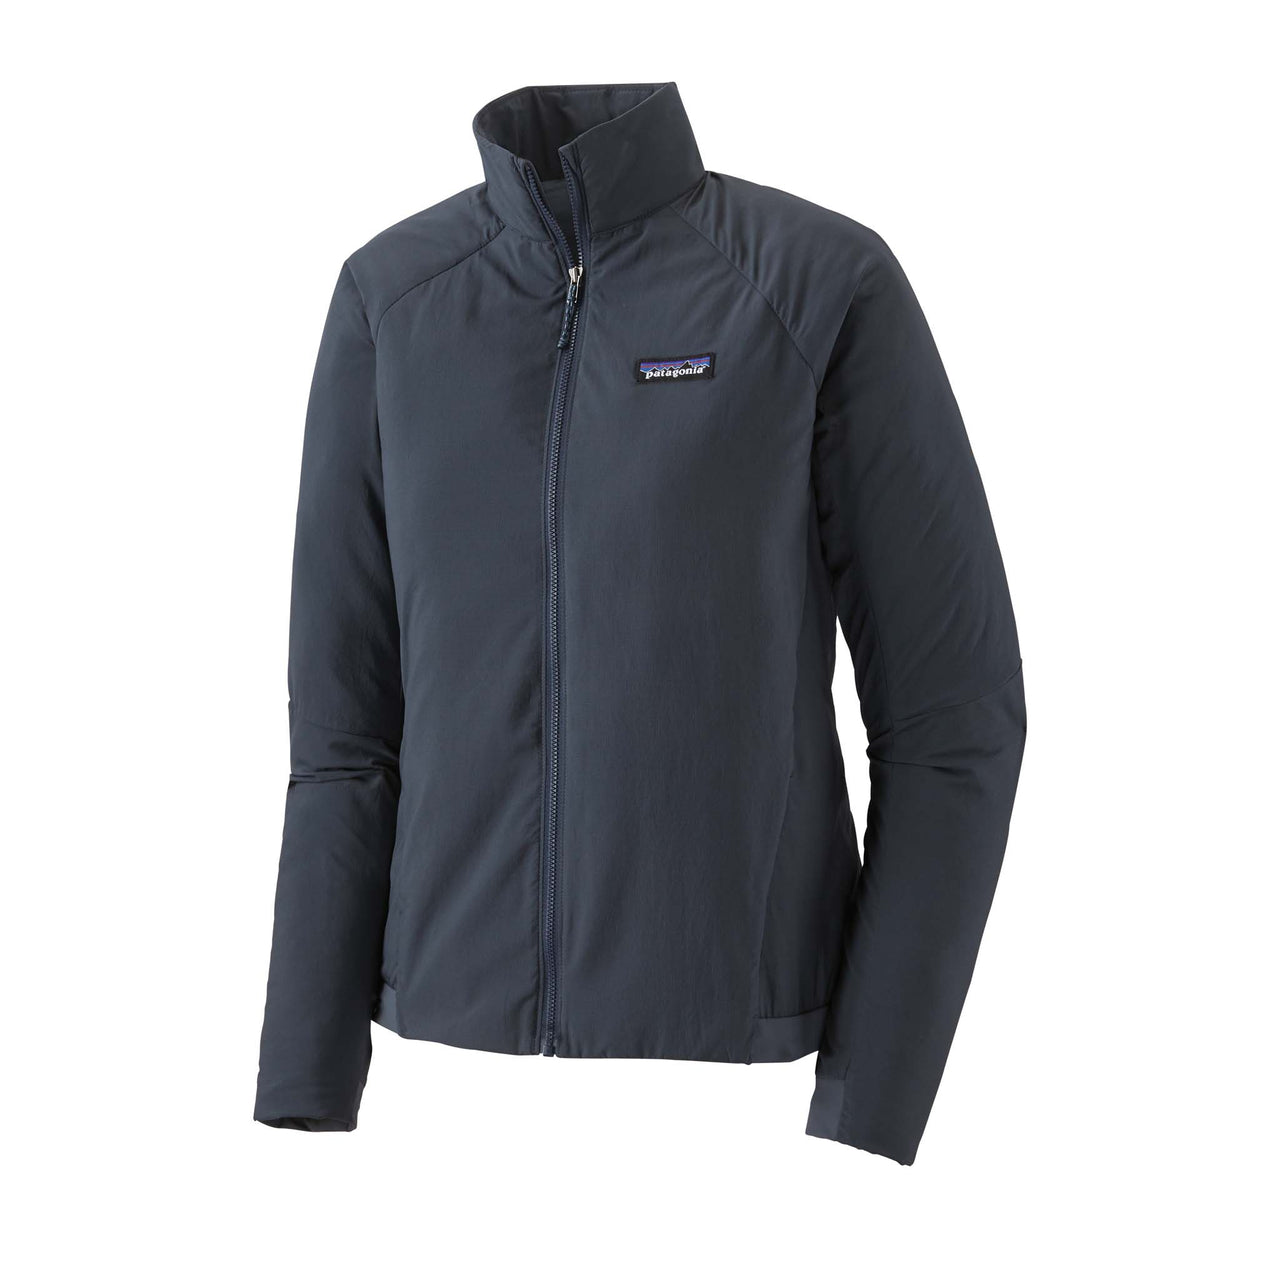 Womens Thermal Airshed Jacket